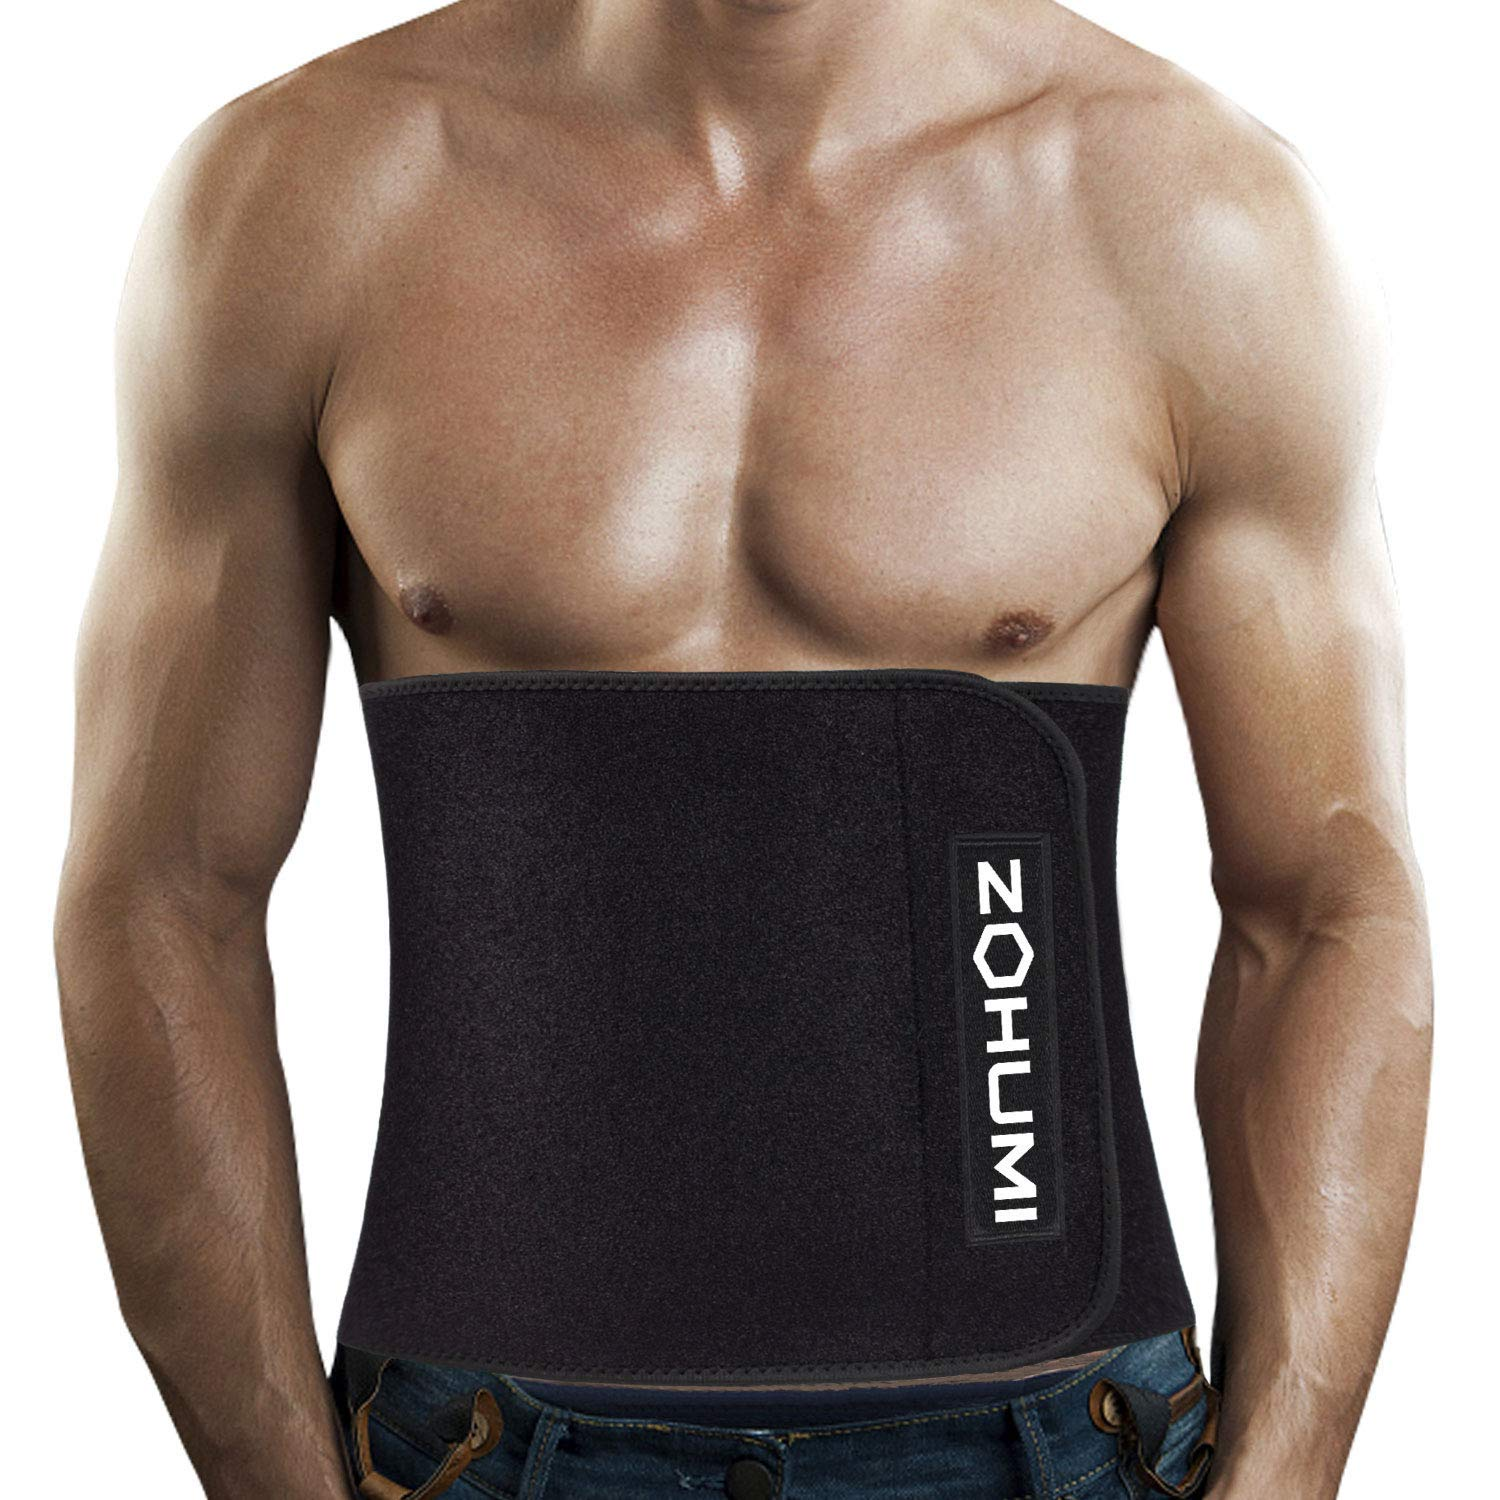 ZOHUMI Mens Waist Trimmer,Widening Neoprene Waist Trainer Ab Belt with Flexible Spring Back Support for Fitness